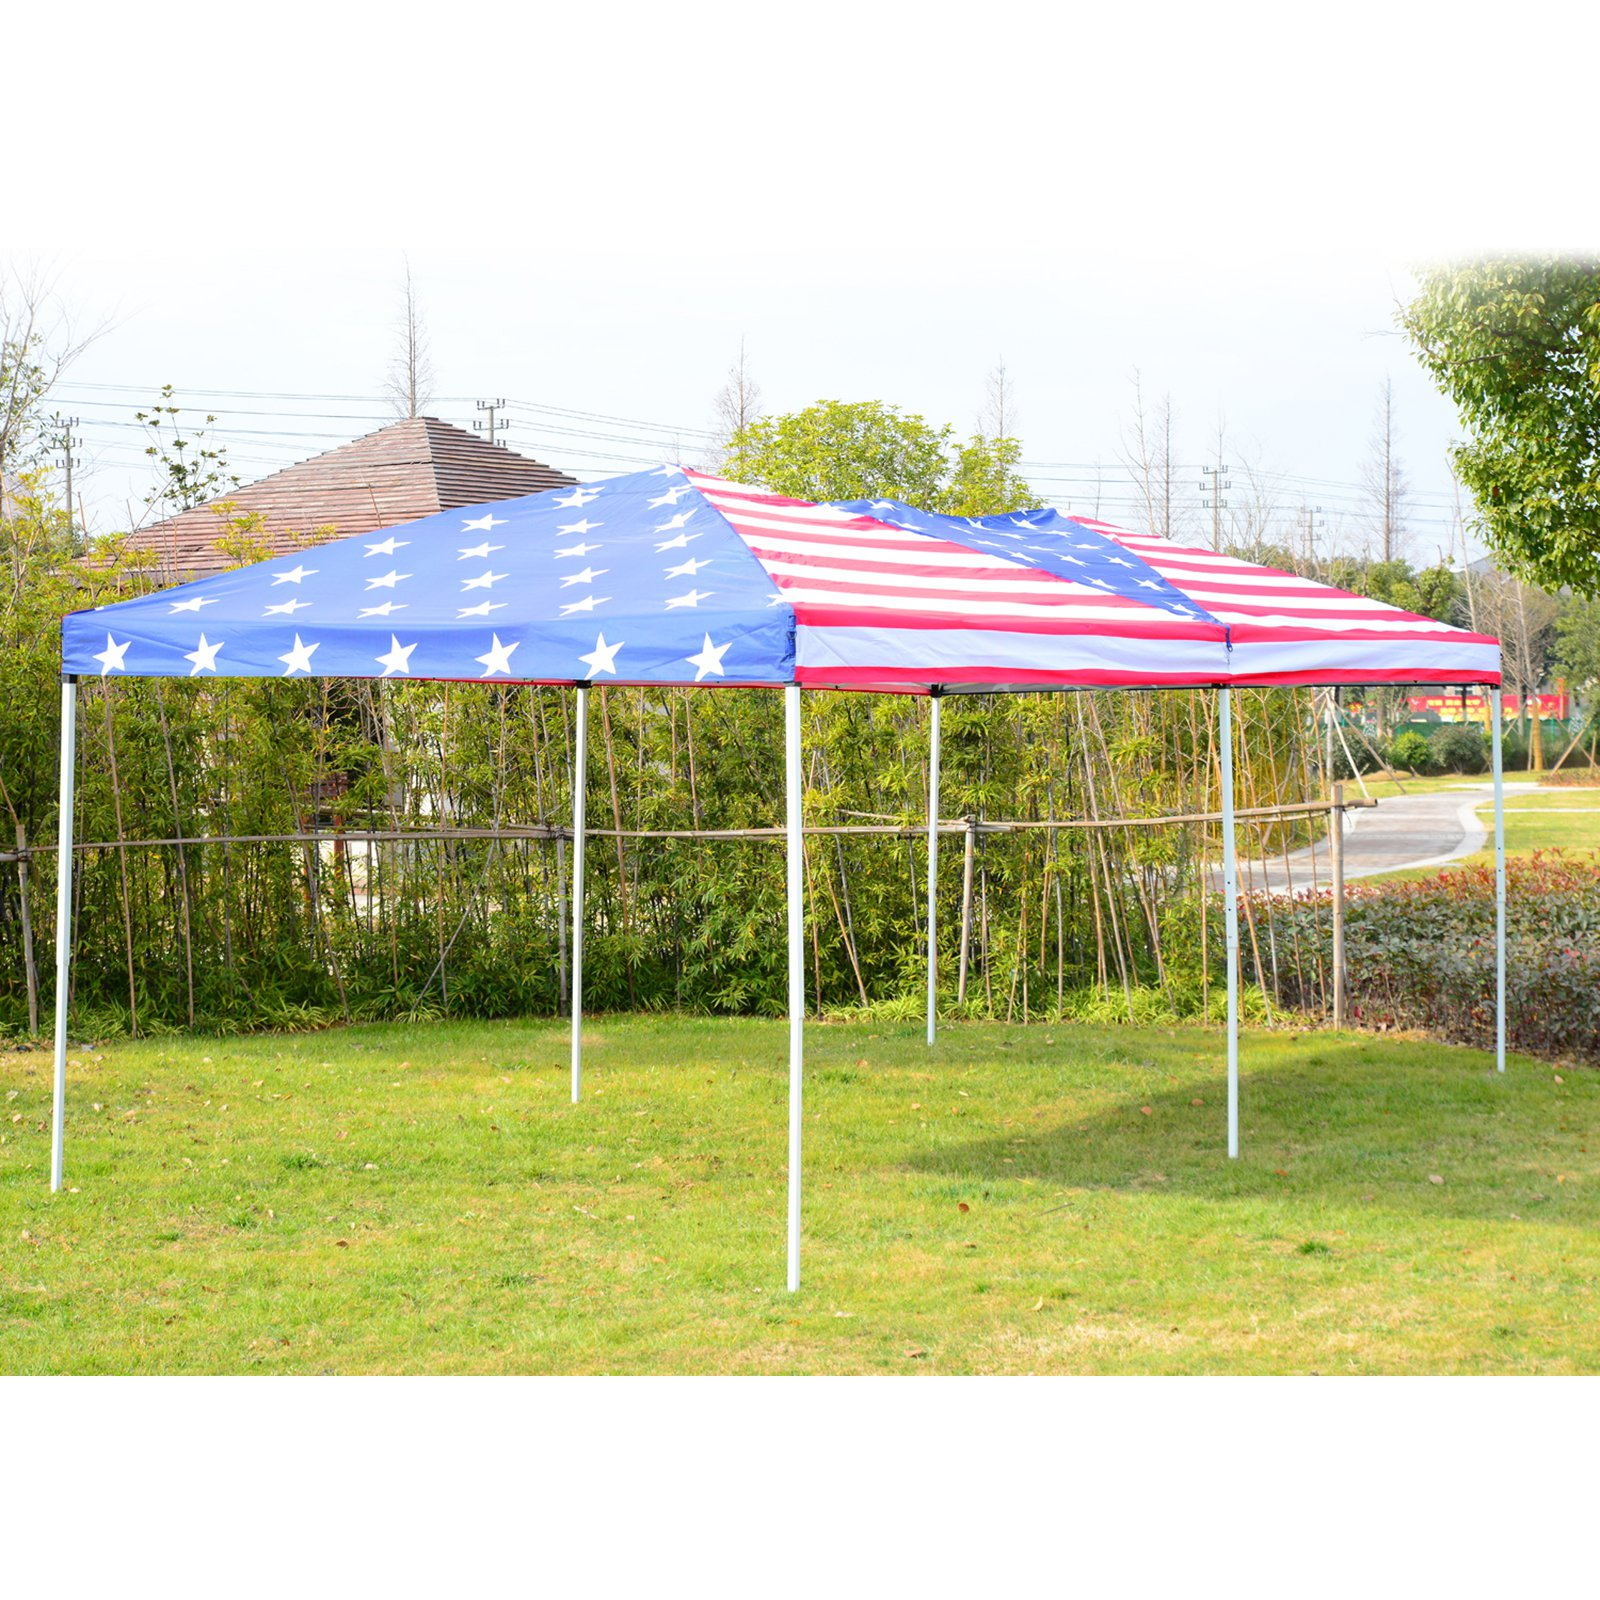 Outsunny 10 x 20 ft. Pop Up Shelter Party Tent Canopy with Mesh Walls by Aosom LLC